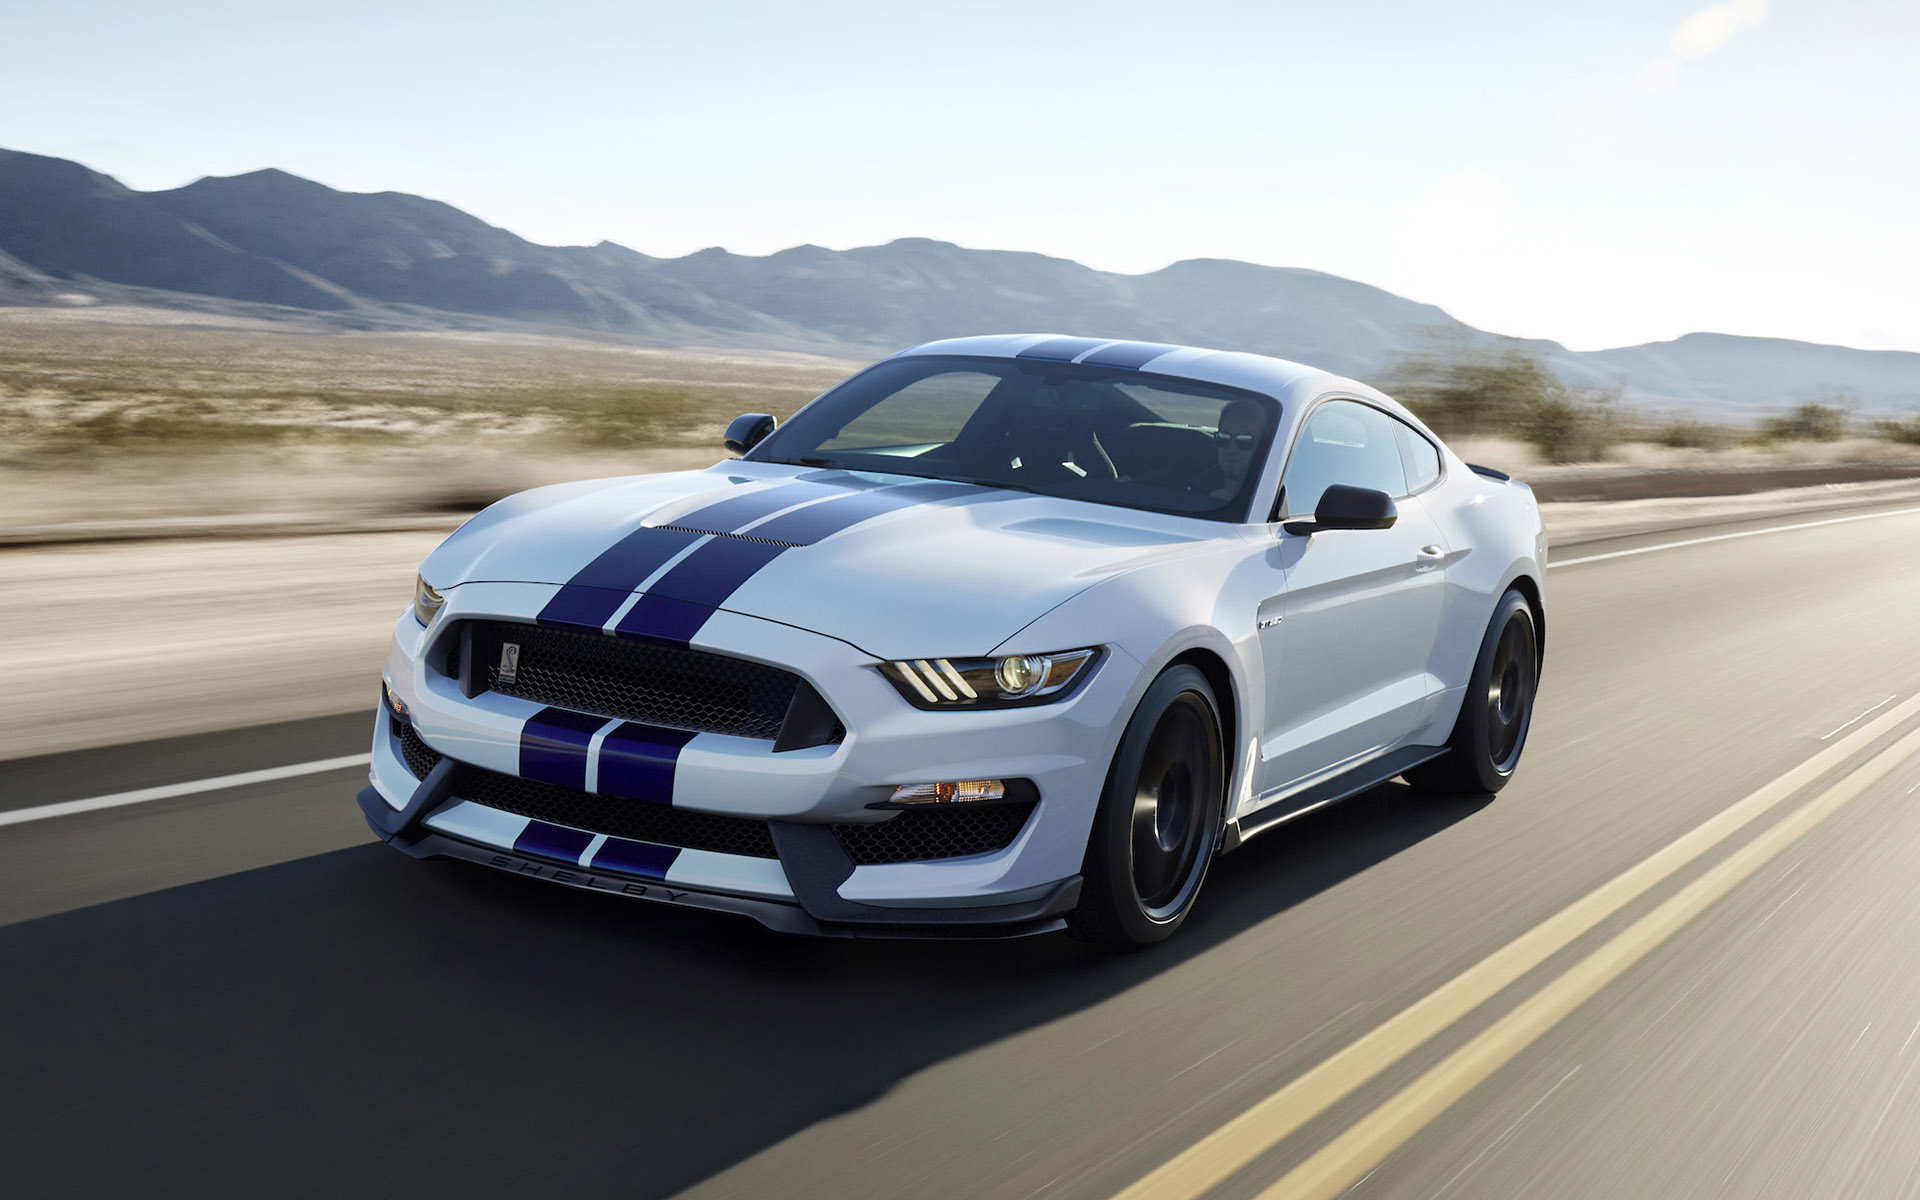 2016 Ford Mustang Shelby GT350 Wallpaper 1920x1200